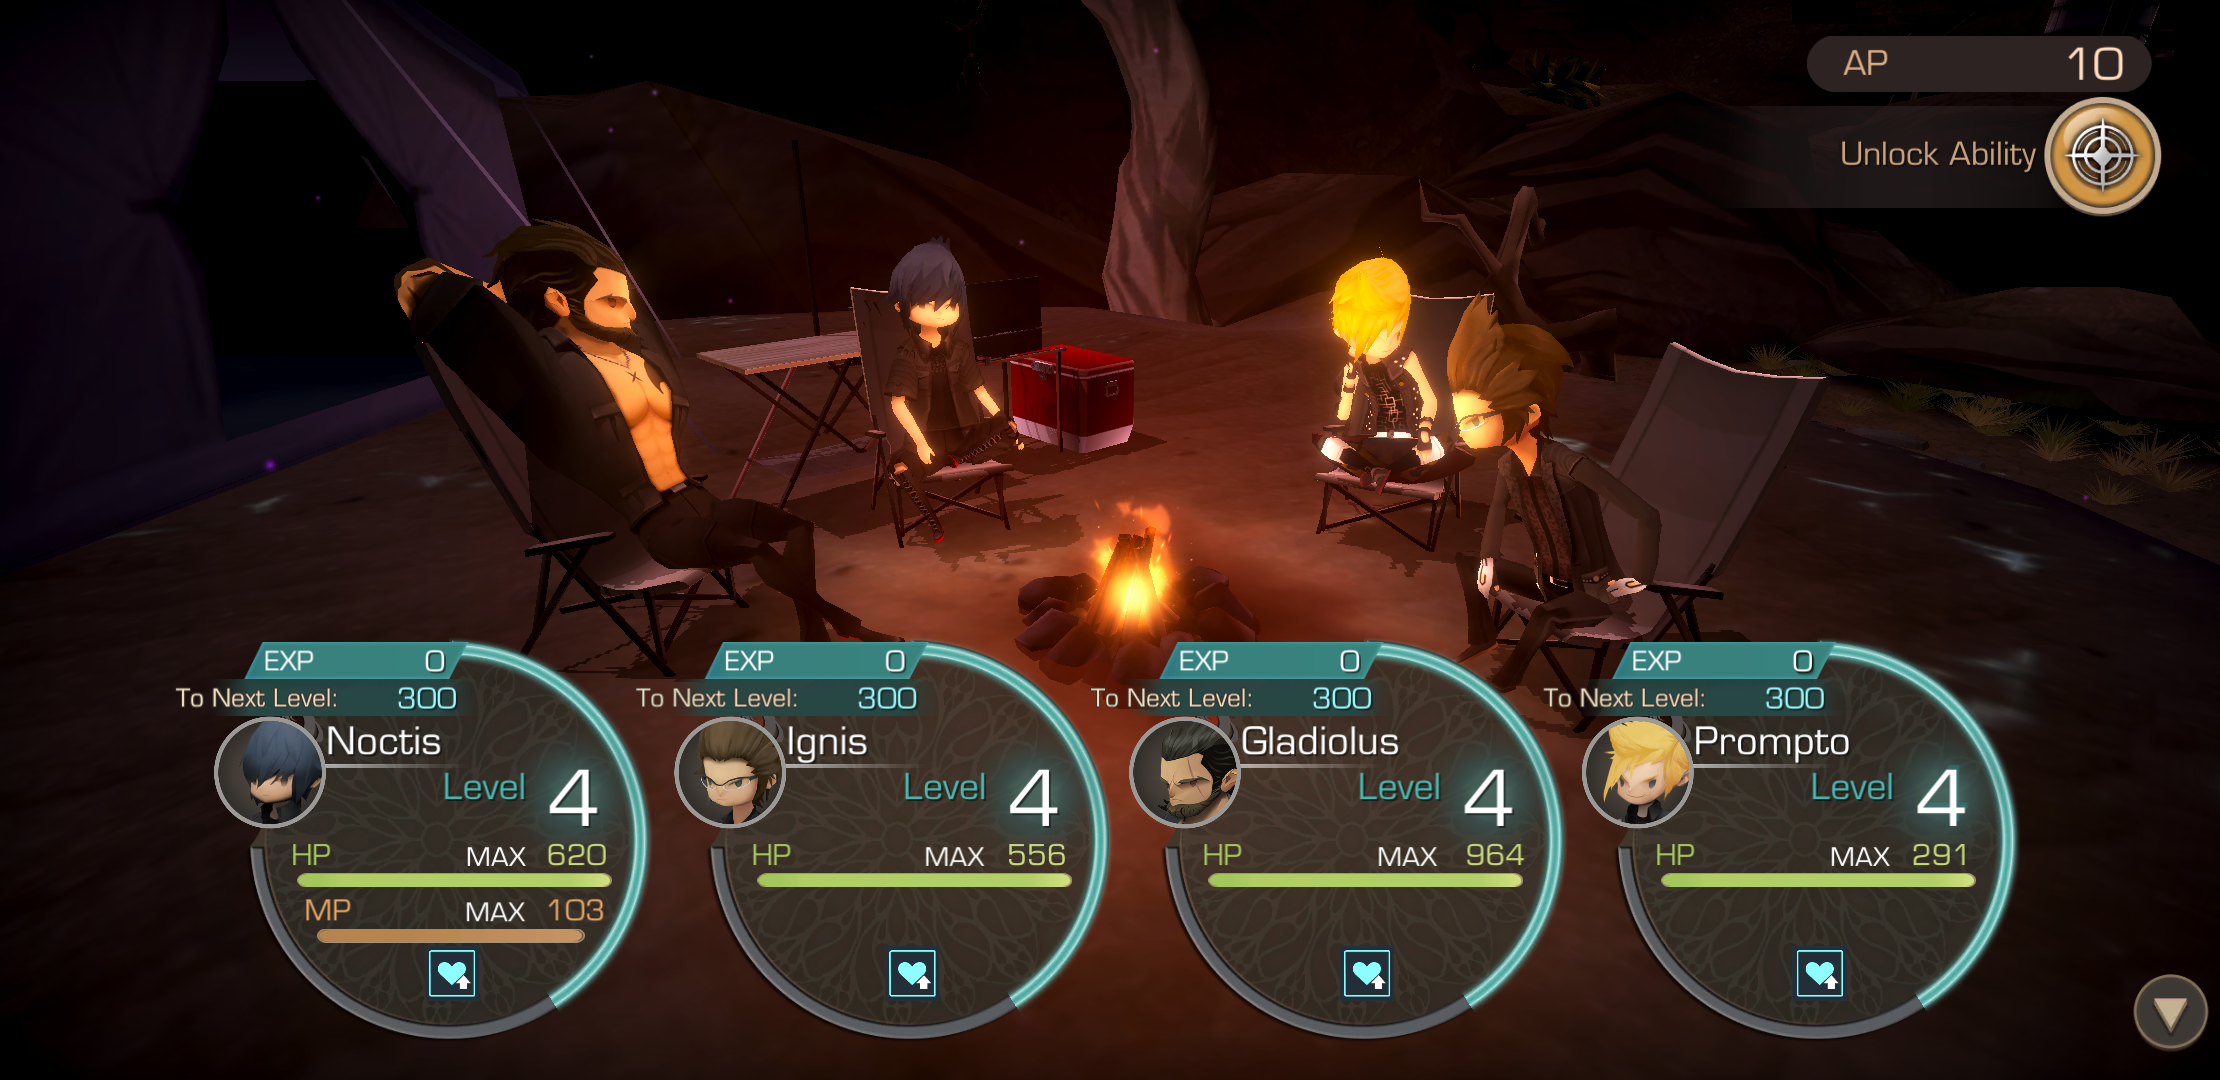 Square Enix has officially released 'Final Fantasy XV Pocket